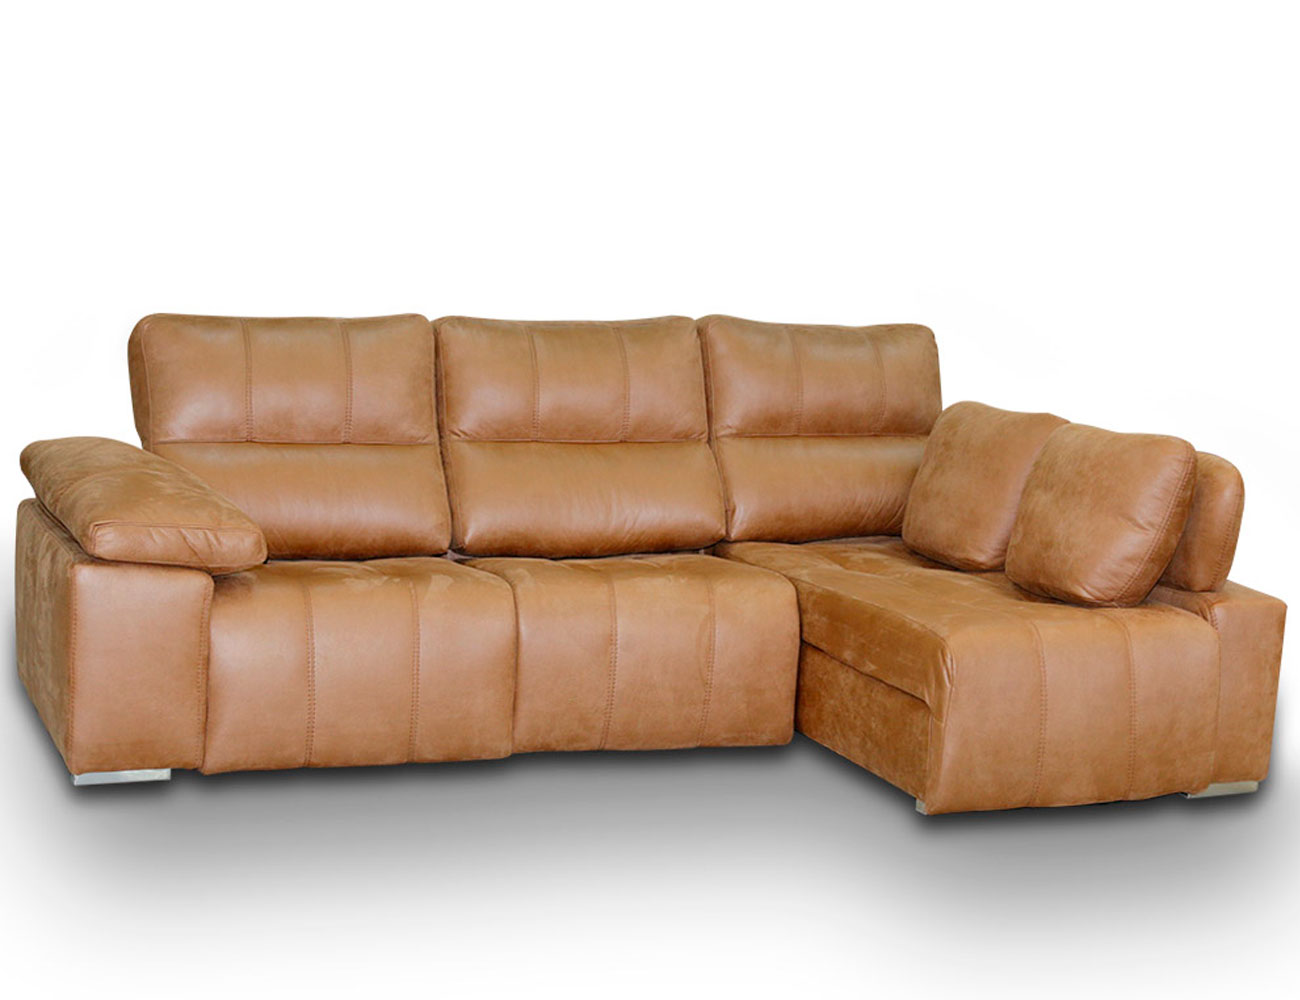 Sofa chaiselongue relax 2 motores anti manchas39